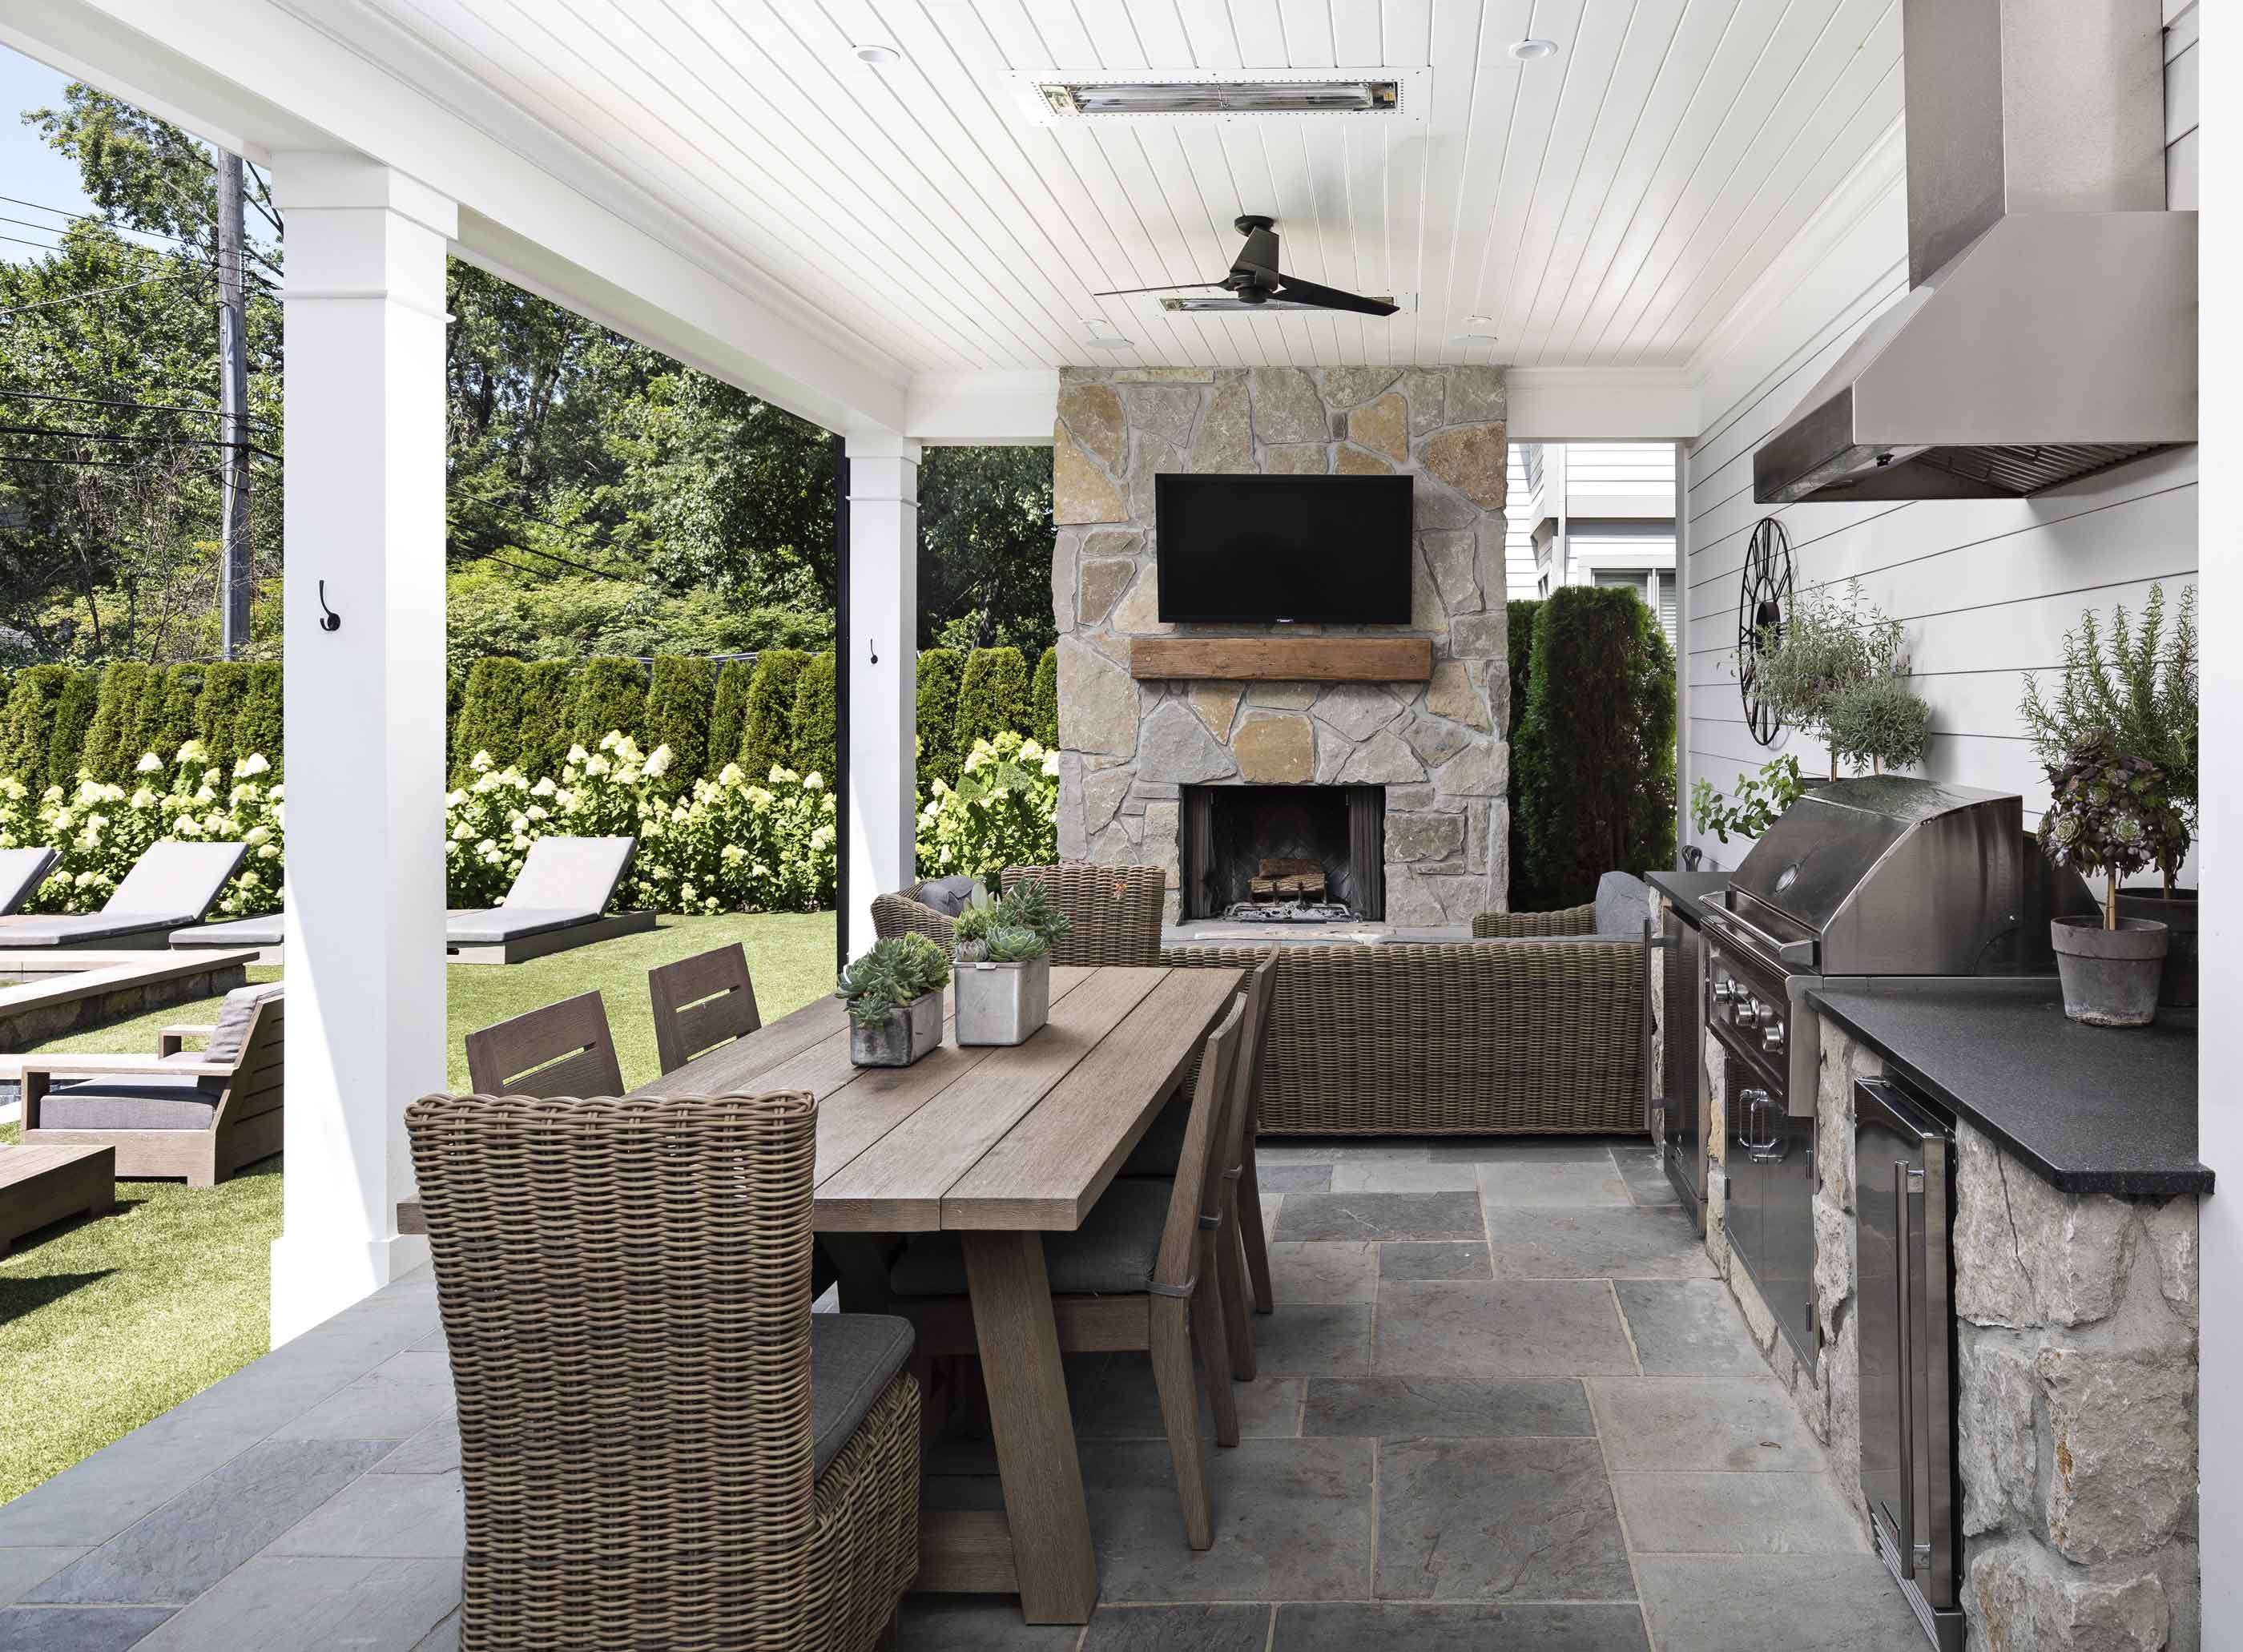 Larchlea outdoor patio and living space